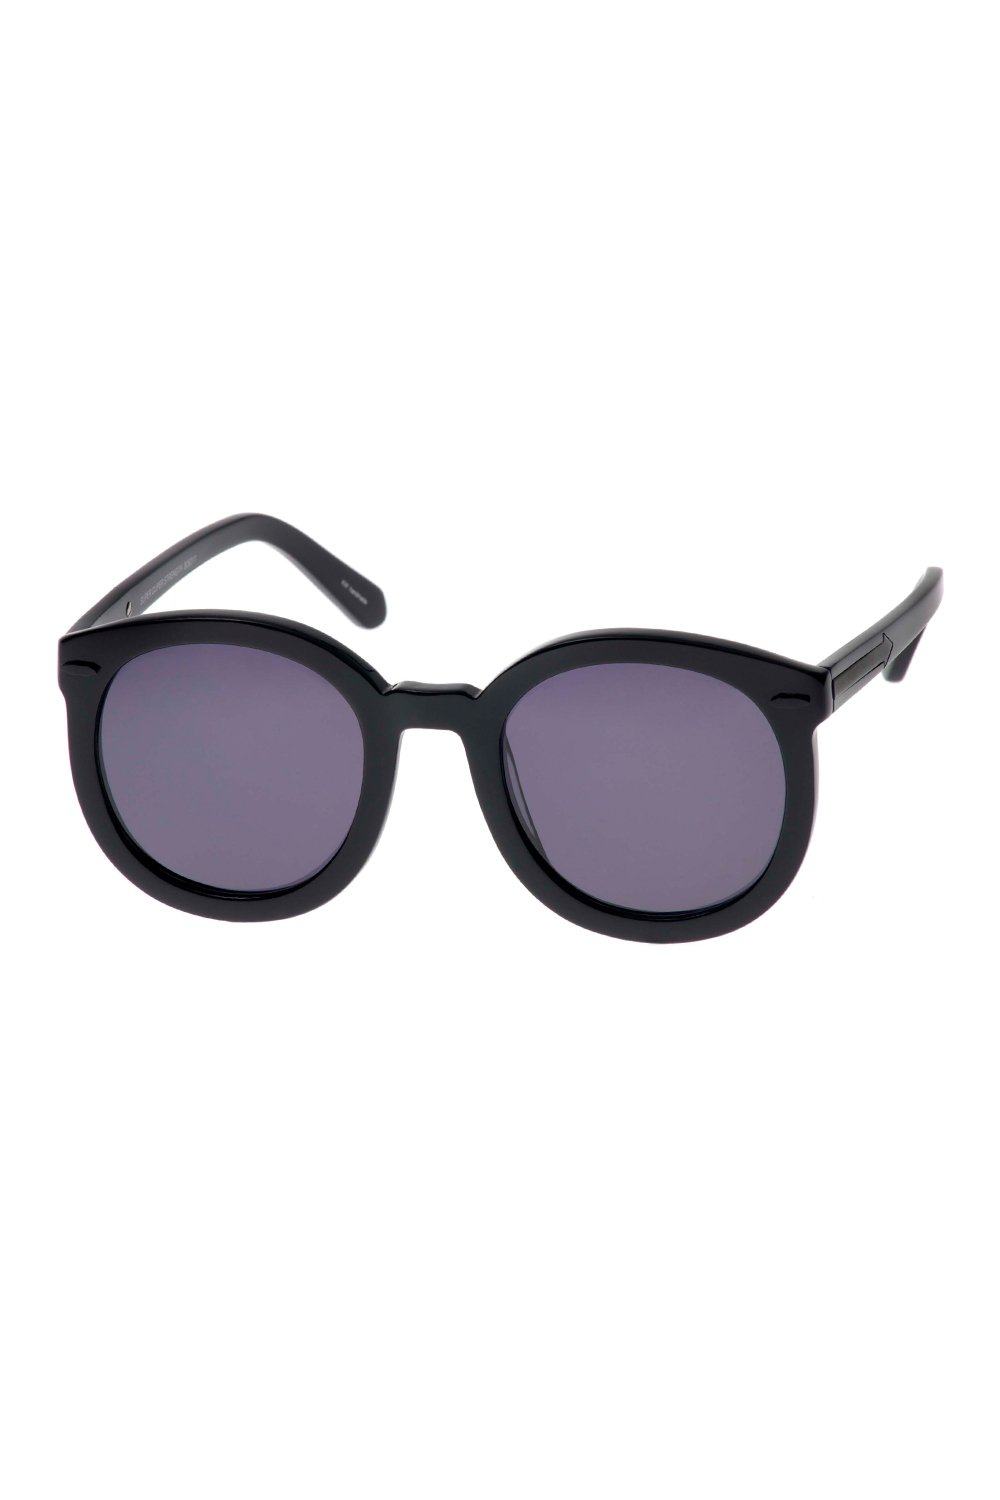 SUNSHADES EYEWEAR NZ Eyewear Black Karen Walker Eyewear | Super Duper Strength - Black